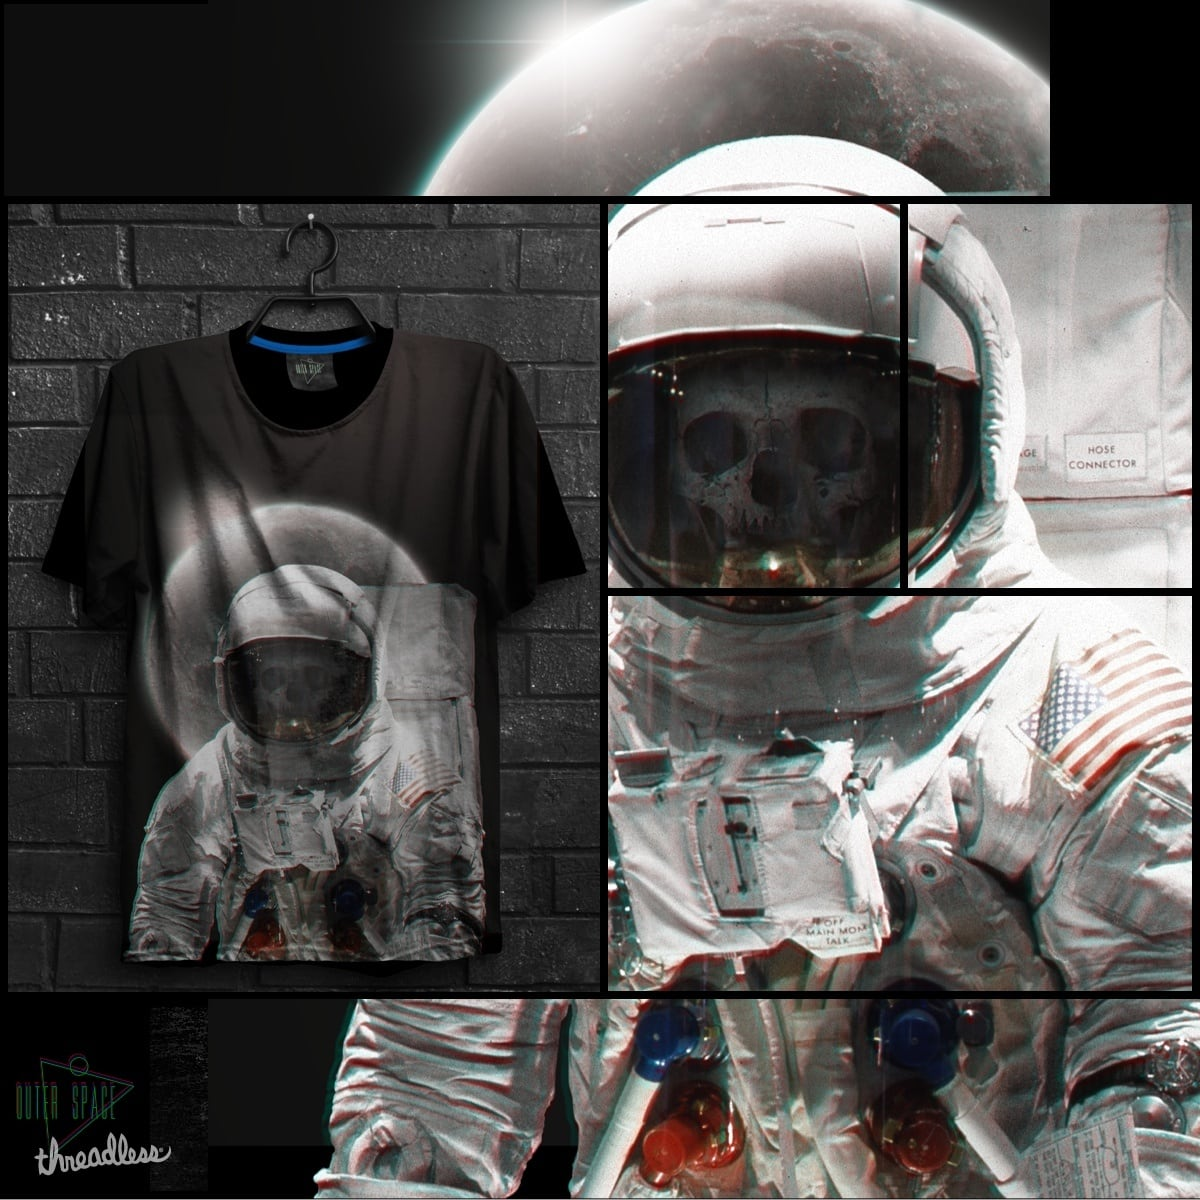 Outer Space by superivan on Threadless